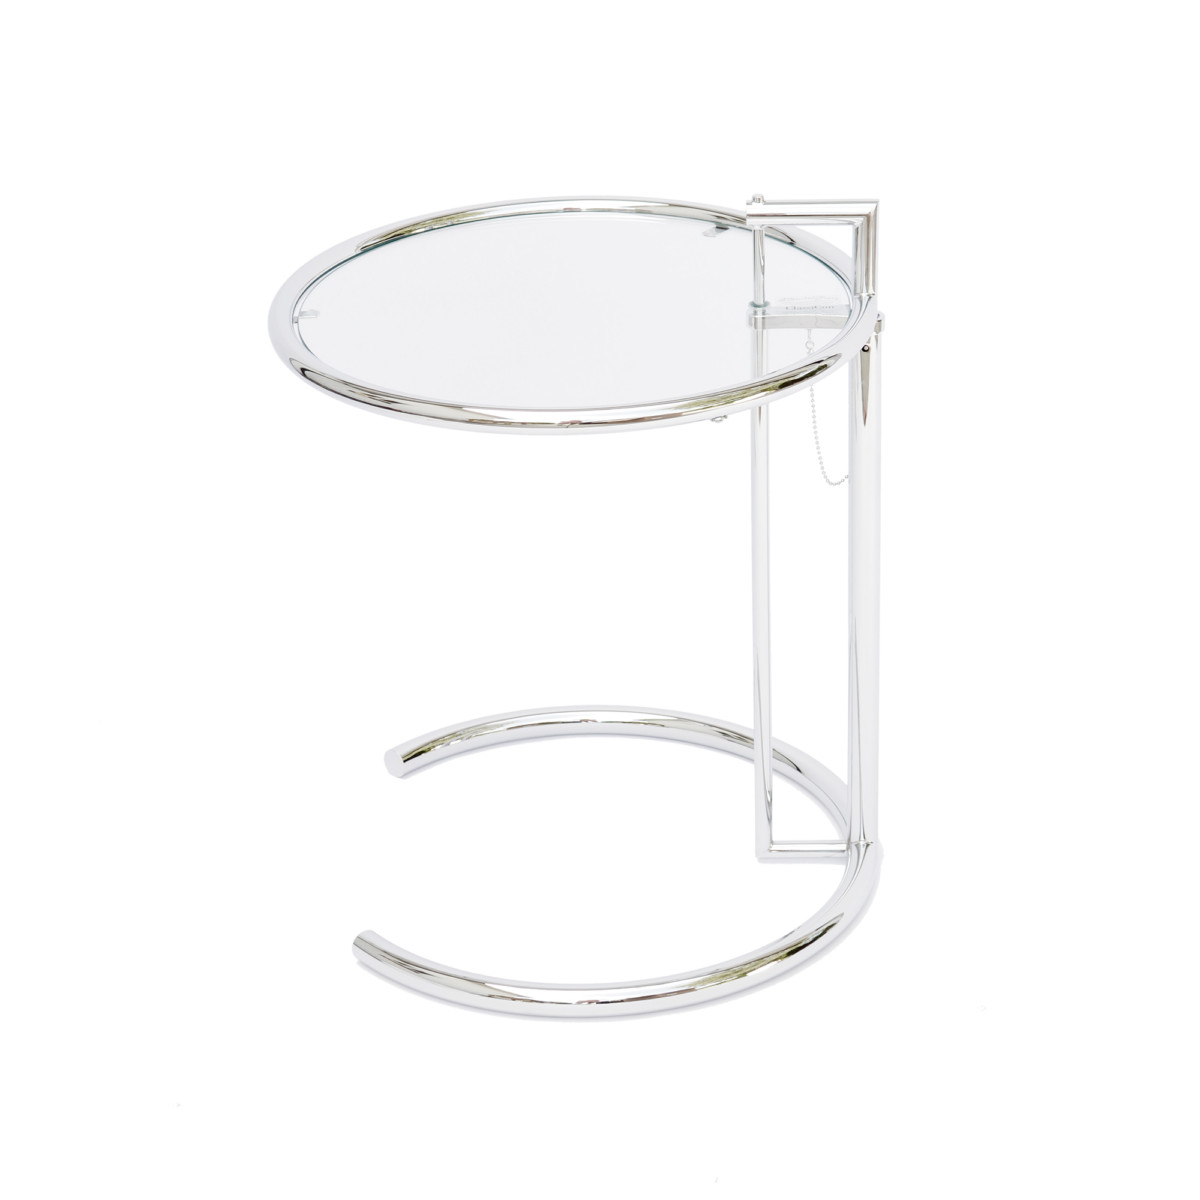 ClassiCon Adjustable Table E 1027 Design Eileen Gray